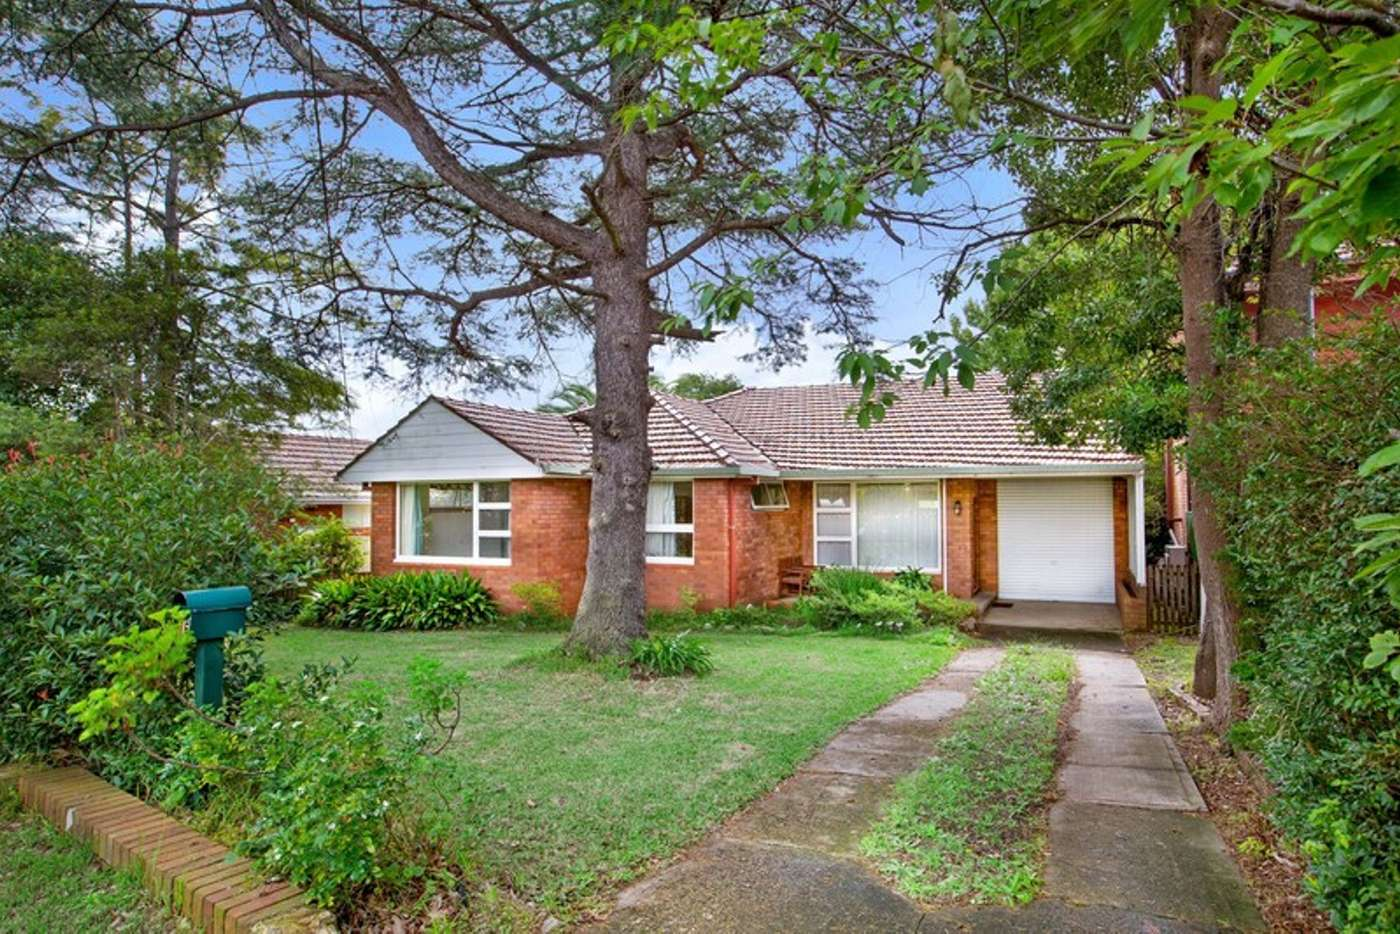 Main view of Homely house listing, 15 Norma Ave, Eastwood NSW 2122